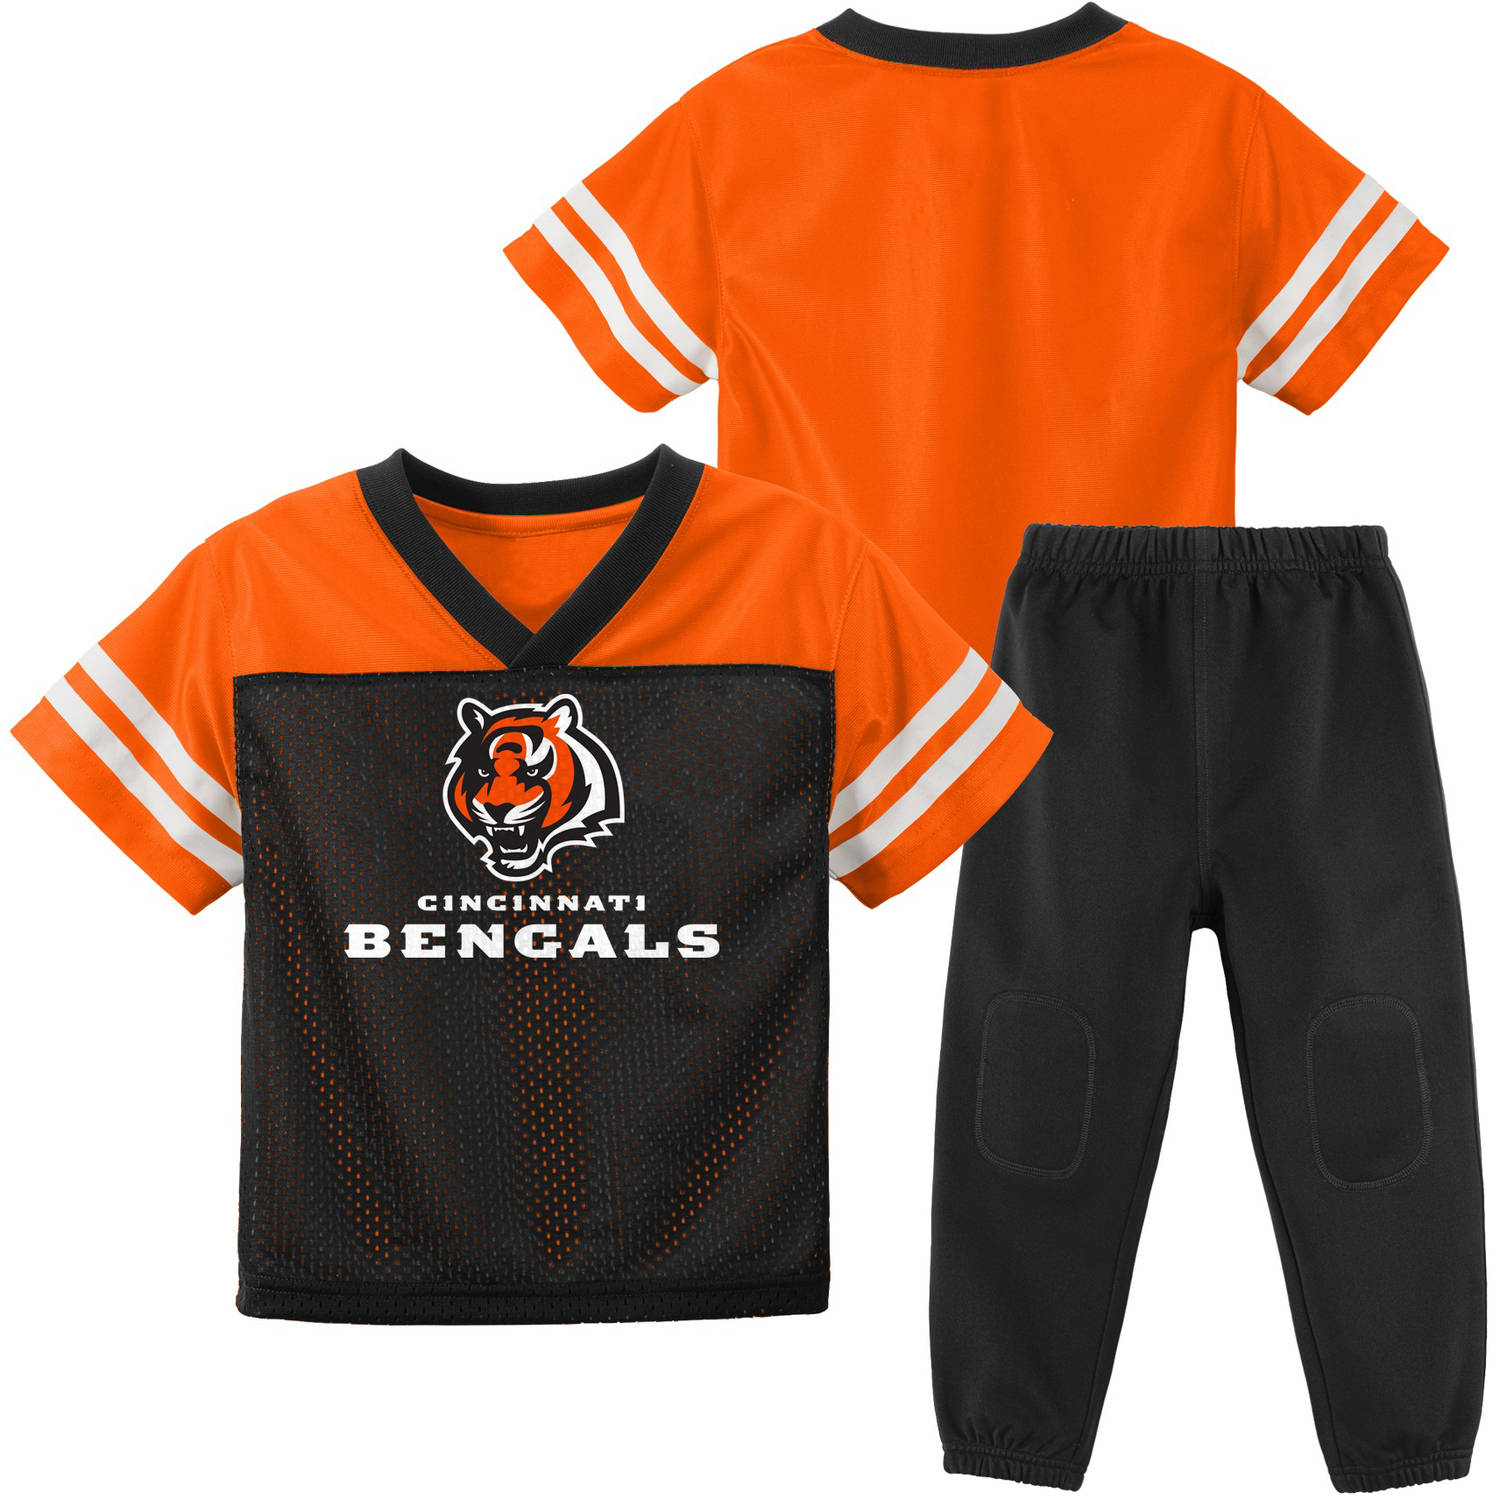 NFL Cincinnati Bengal Toddler Short Sleeve Top and Pant Set